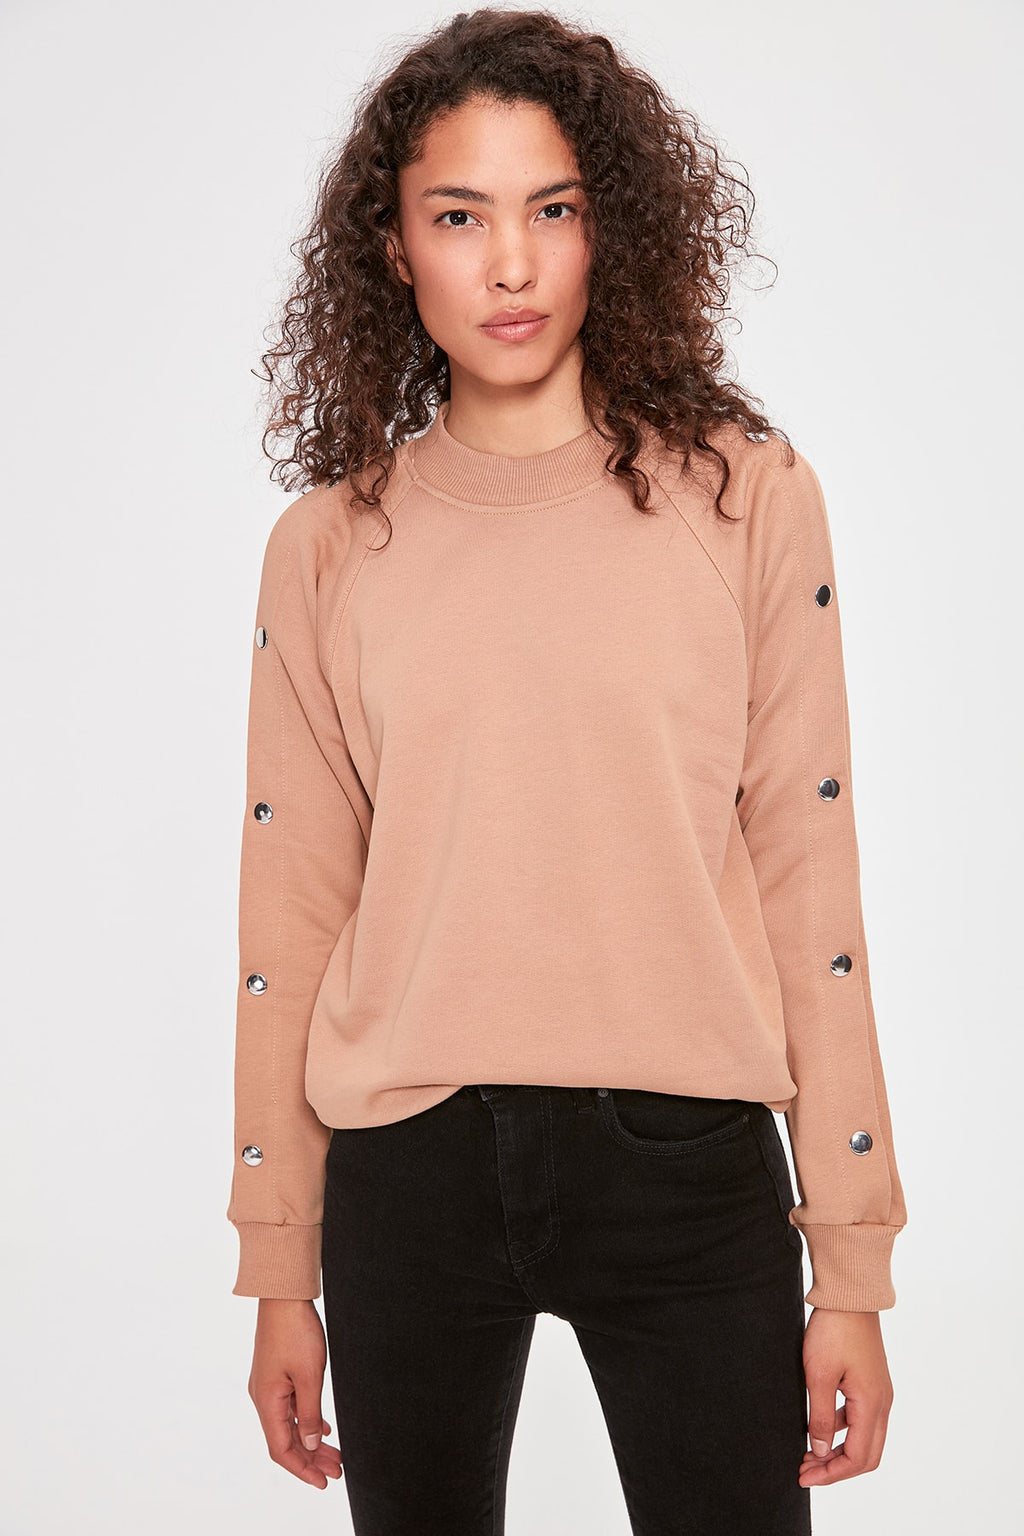 Camel Studs Detailed Basic Knitted Sweatshirt - emuuz.com